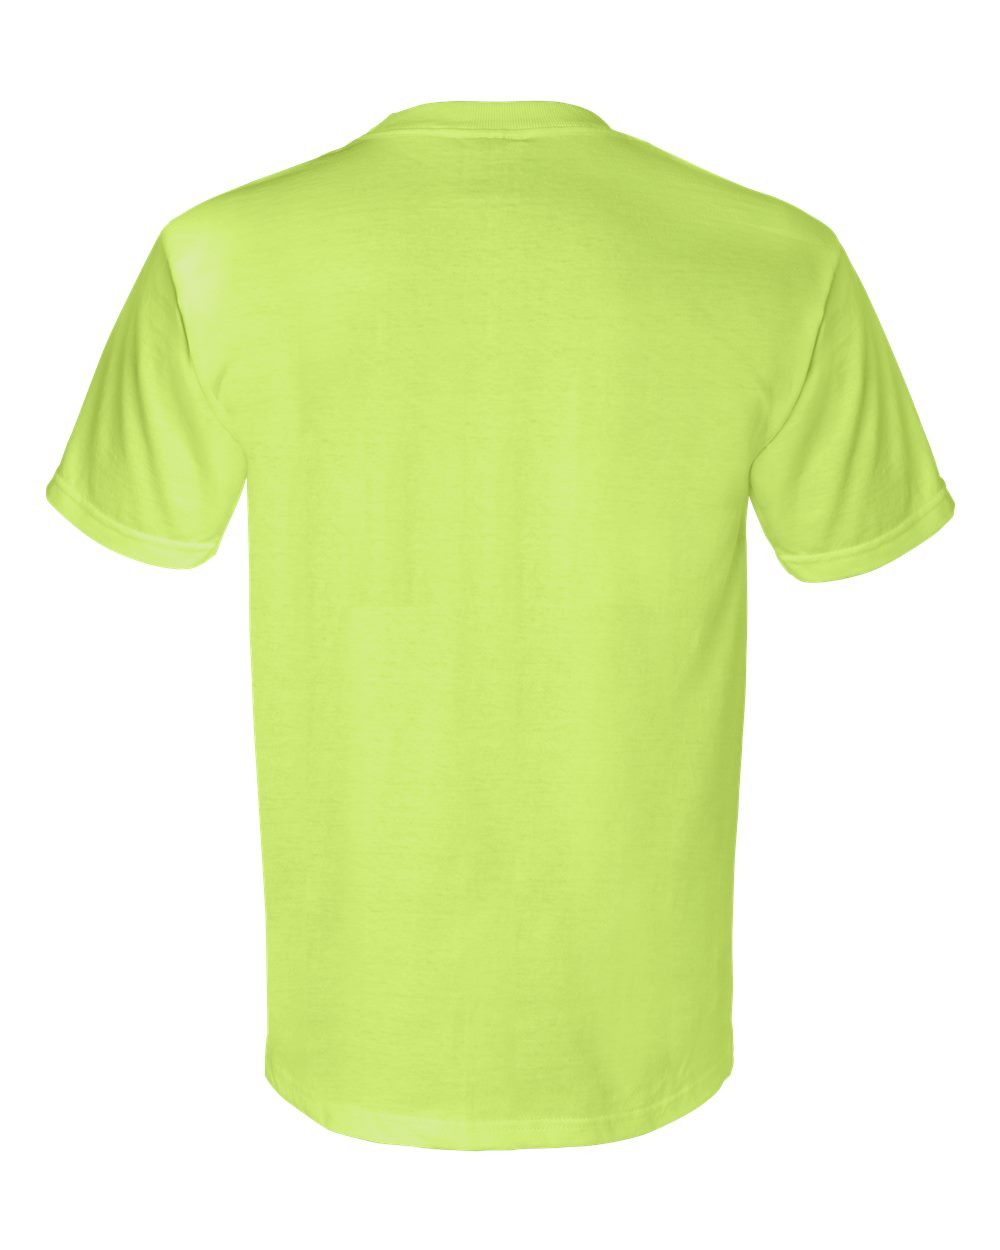 Bayside-Mens-Union-Made-Short-Sleeve-T-Shirt-with-a-Pocket-3015-up-to-3XL thumbnail 13